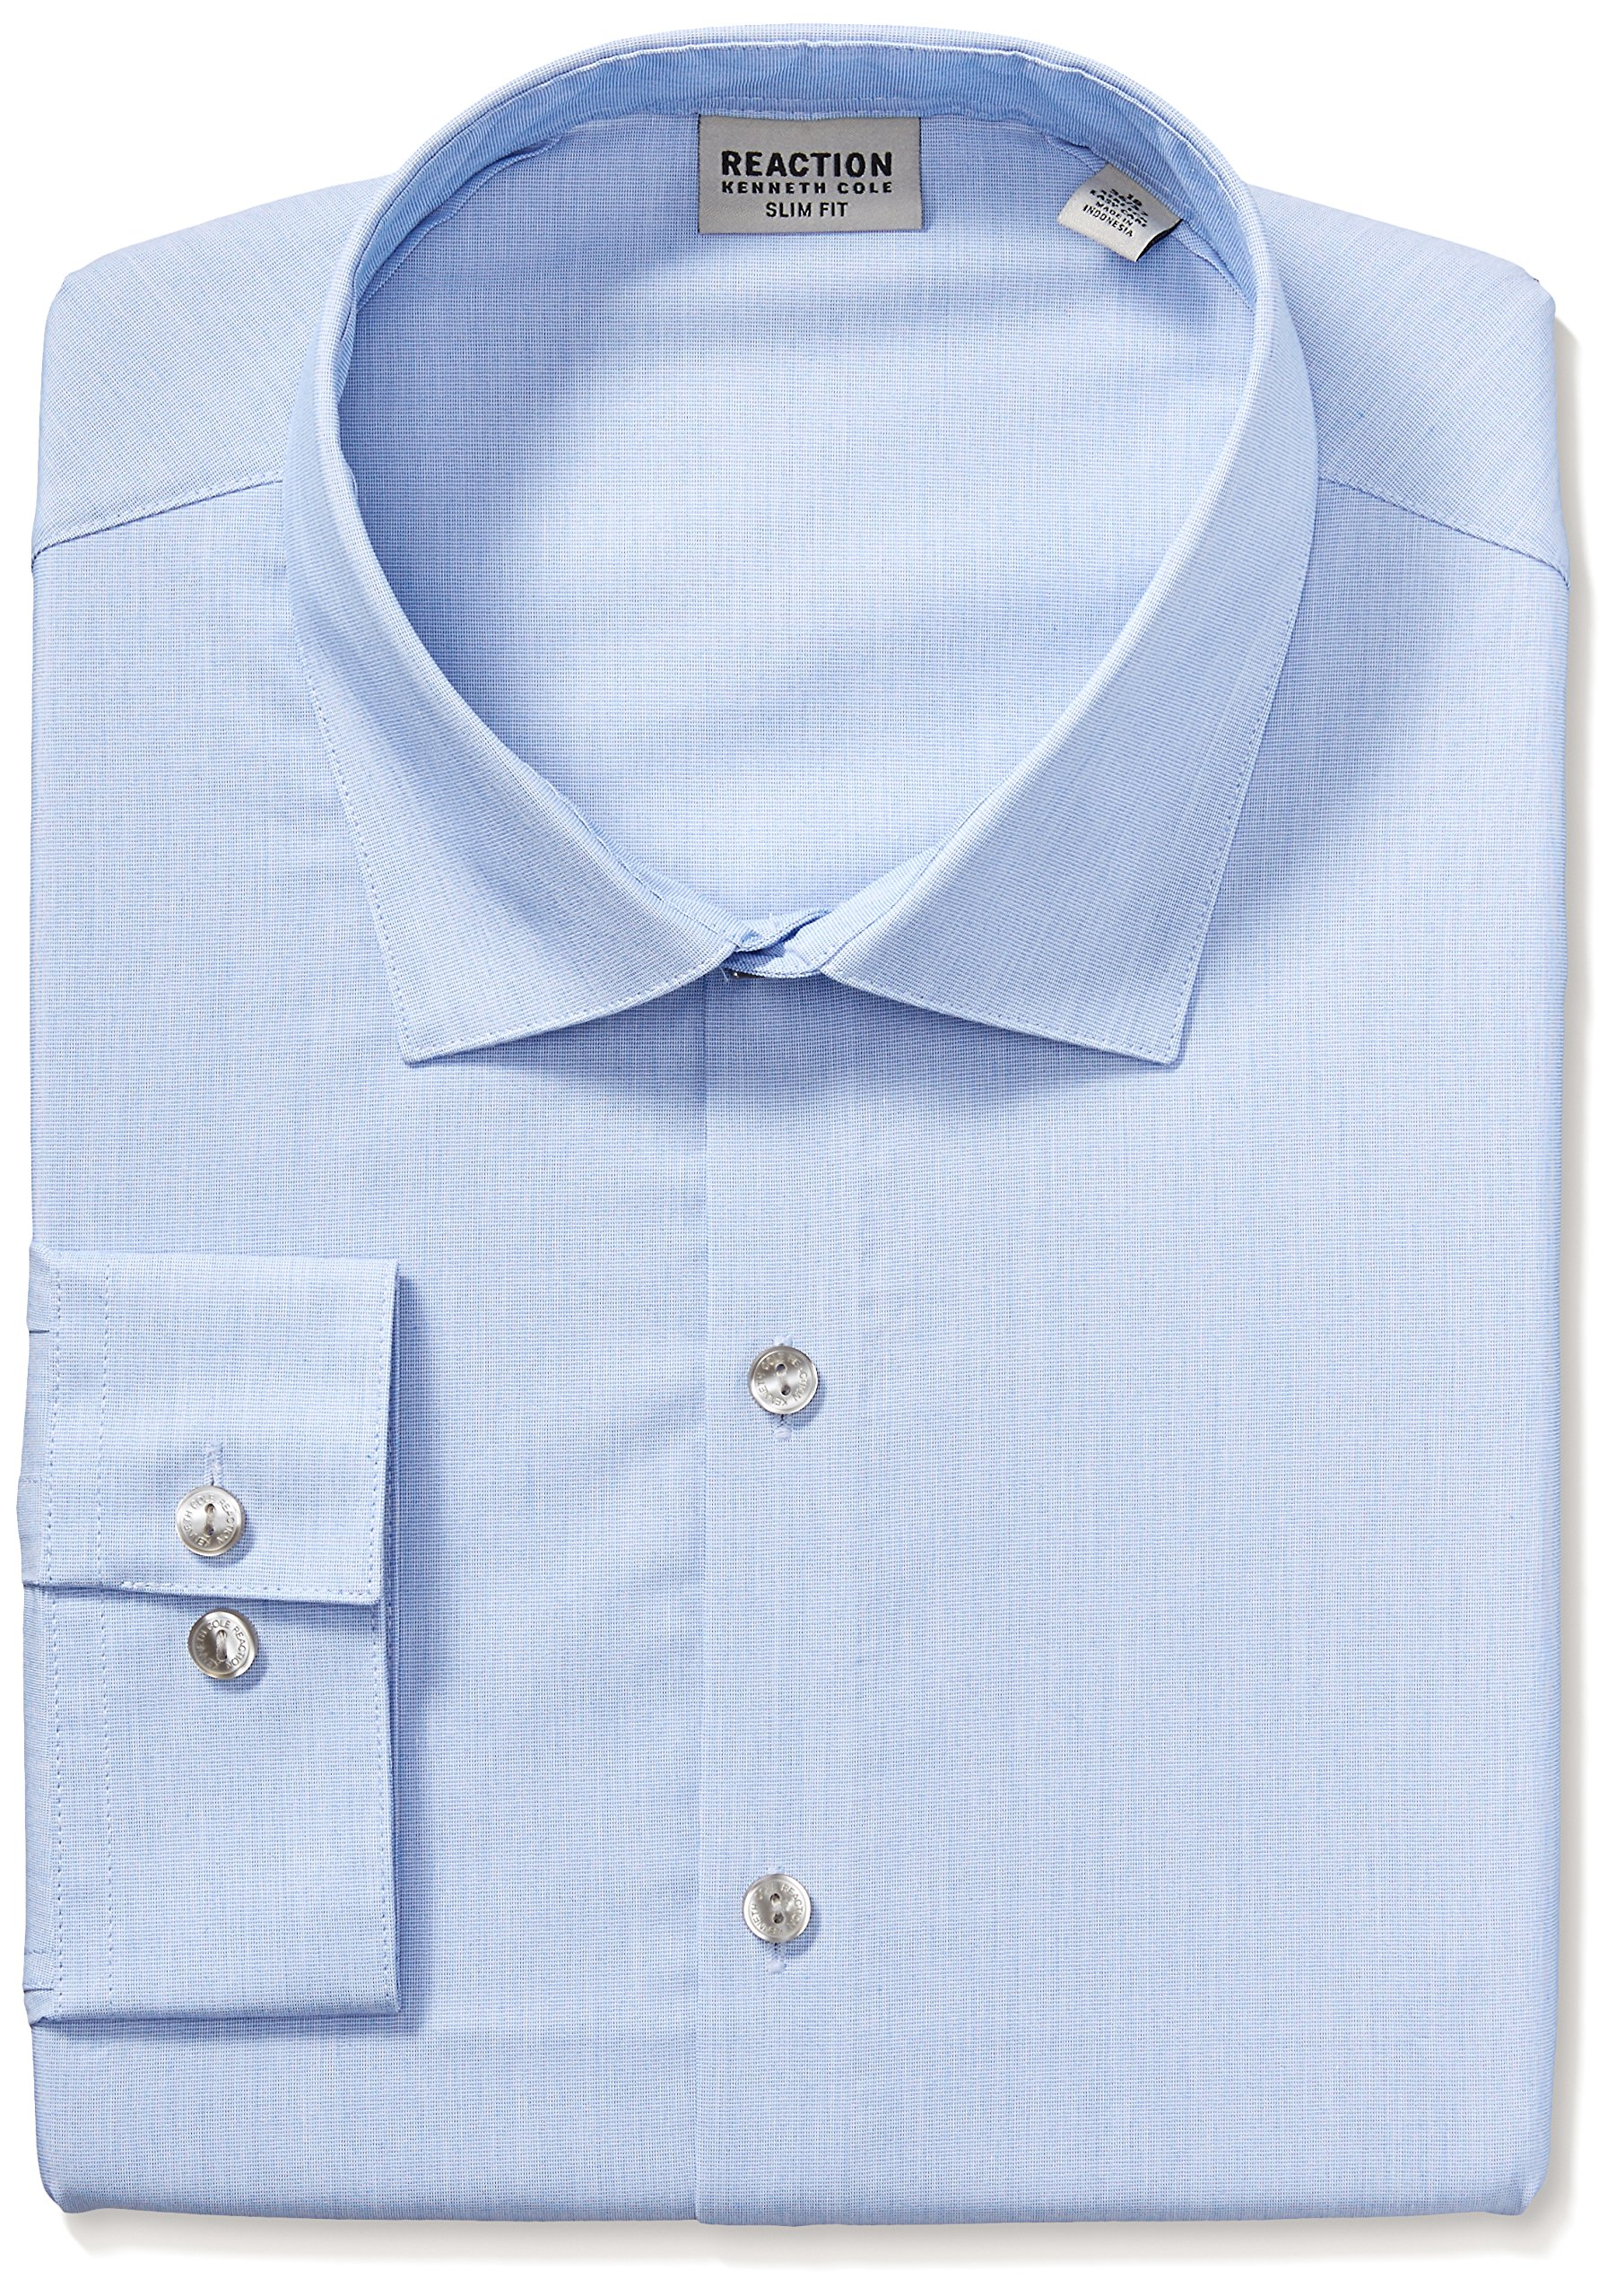 Kenneth Cole REACTION Men's Big and Tall Dress Shirt Slim Fit Technicole Stretch Solid, Blue Jay, 18'' Neck 36''-37'' Sleeve (XX-Large)